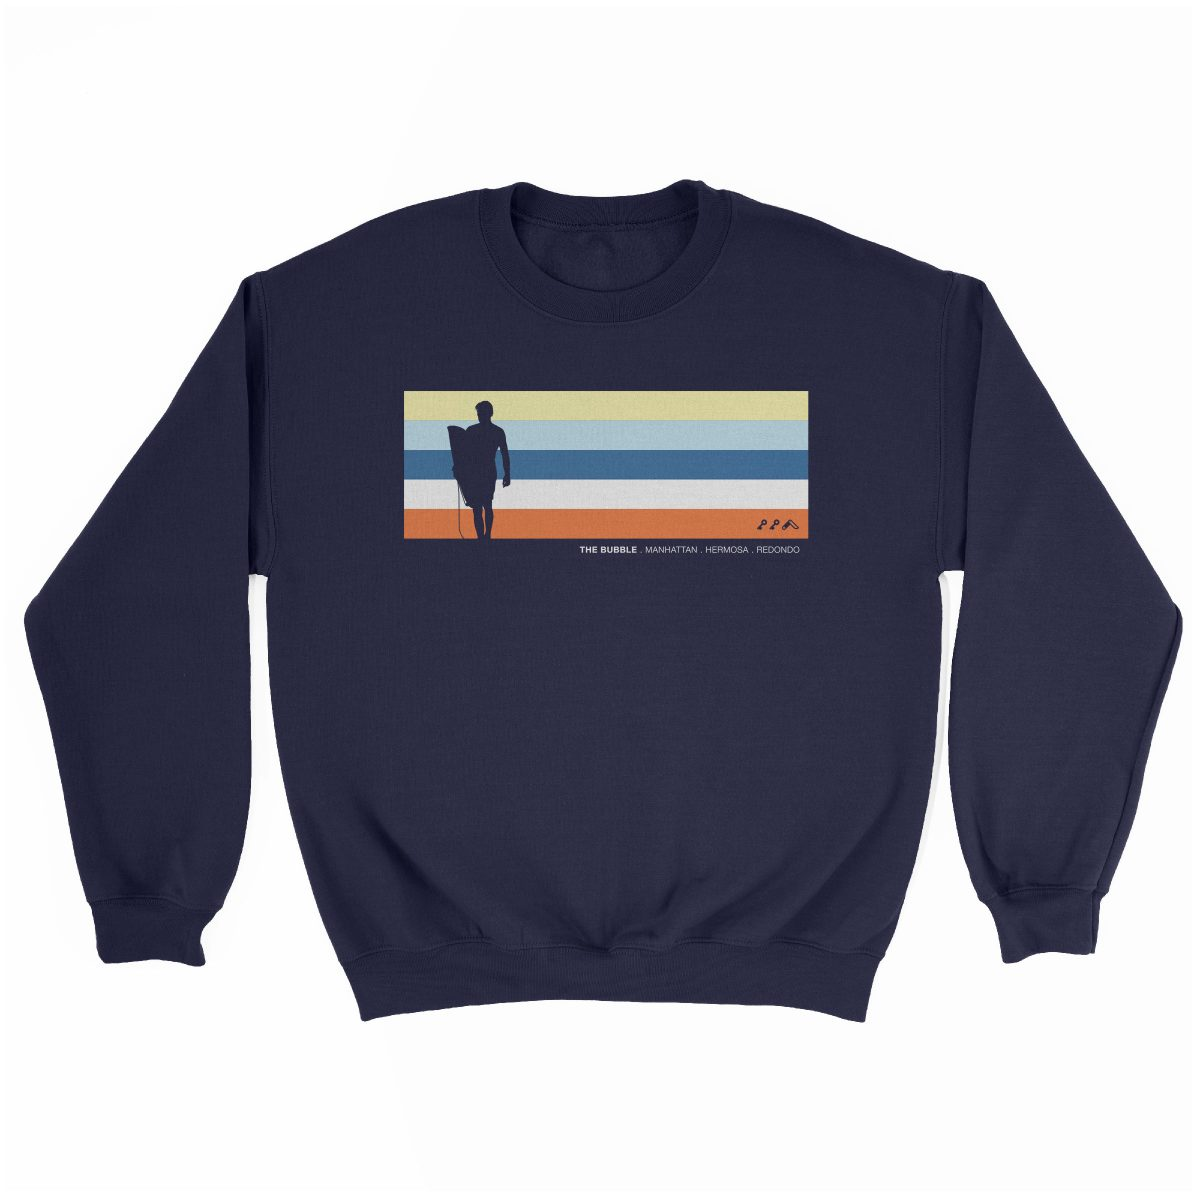 the bubble redondo hermosa manhattan beach sweatshirt in navy by kikicutt sweatshirt store